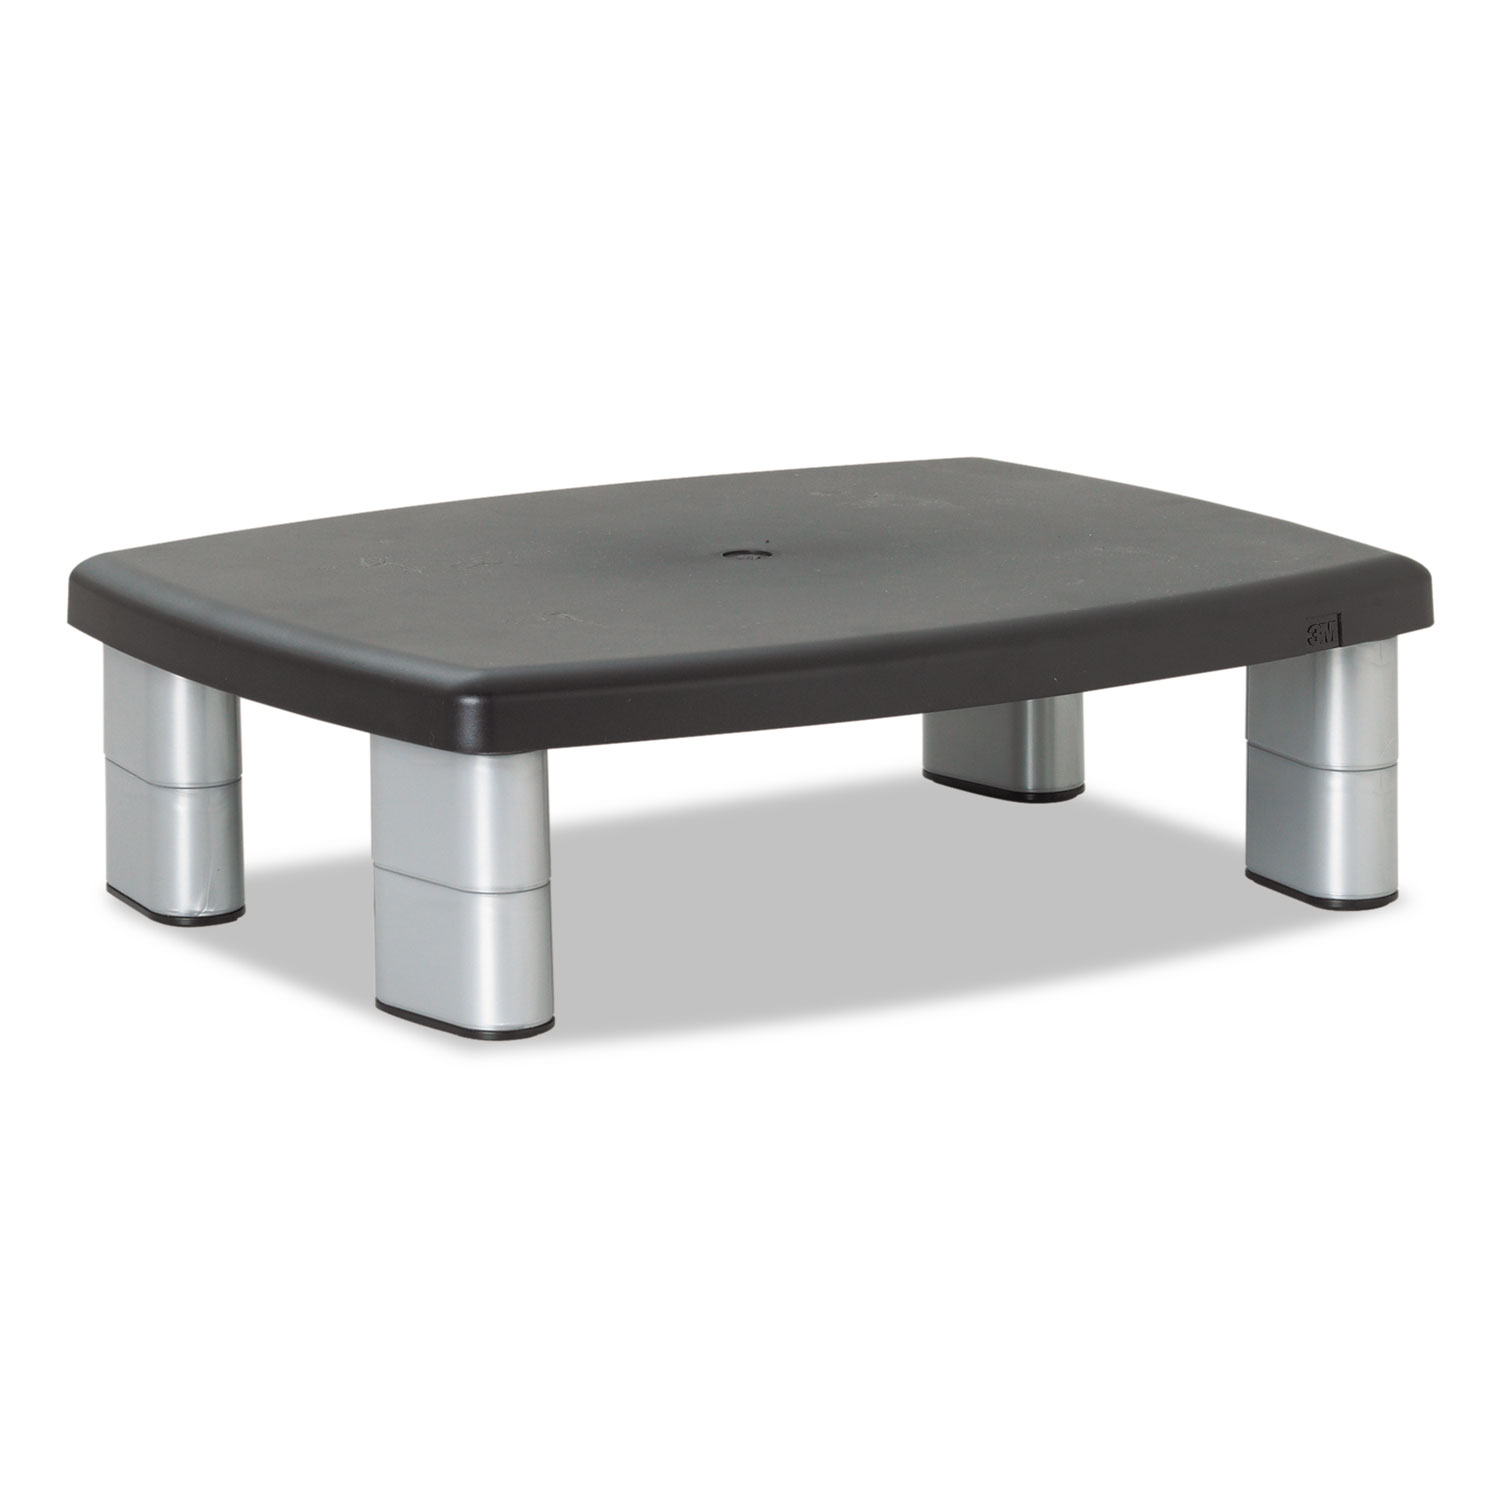 Adjustable Height Monitor Stand, 15 x 12 x 2.63 to 5.88, Black/Silver